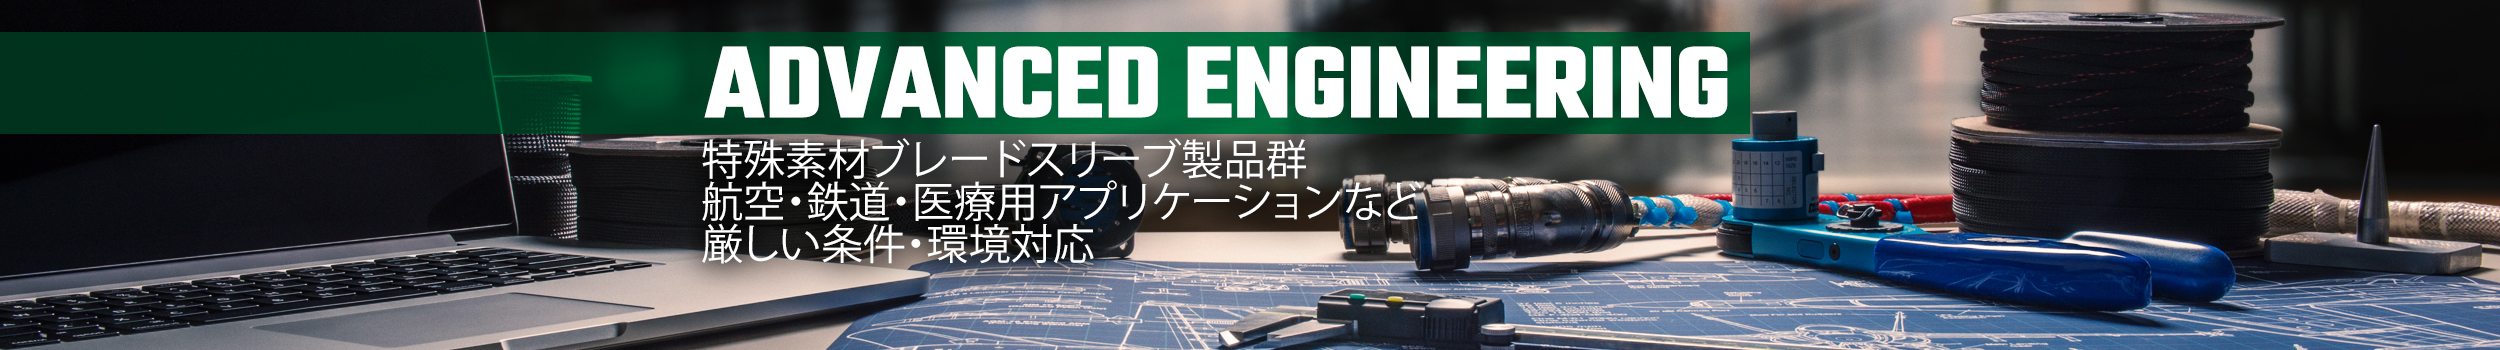 Advanced engineering banner jp